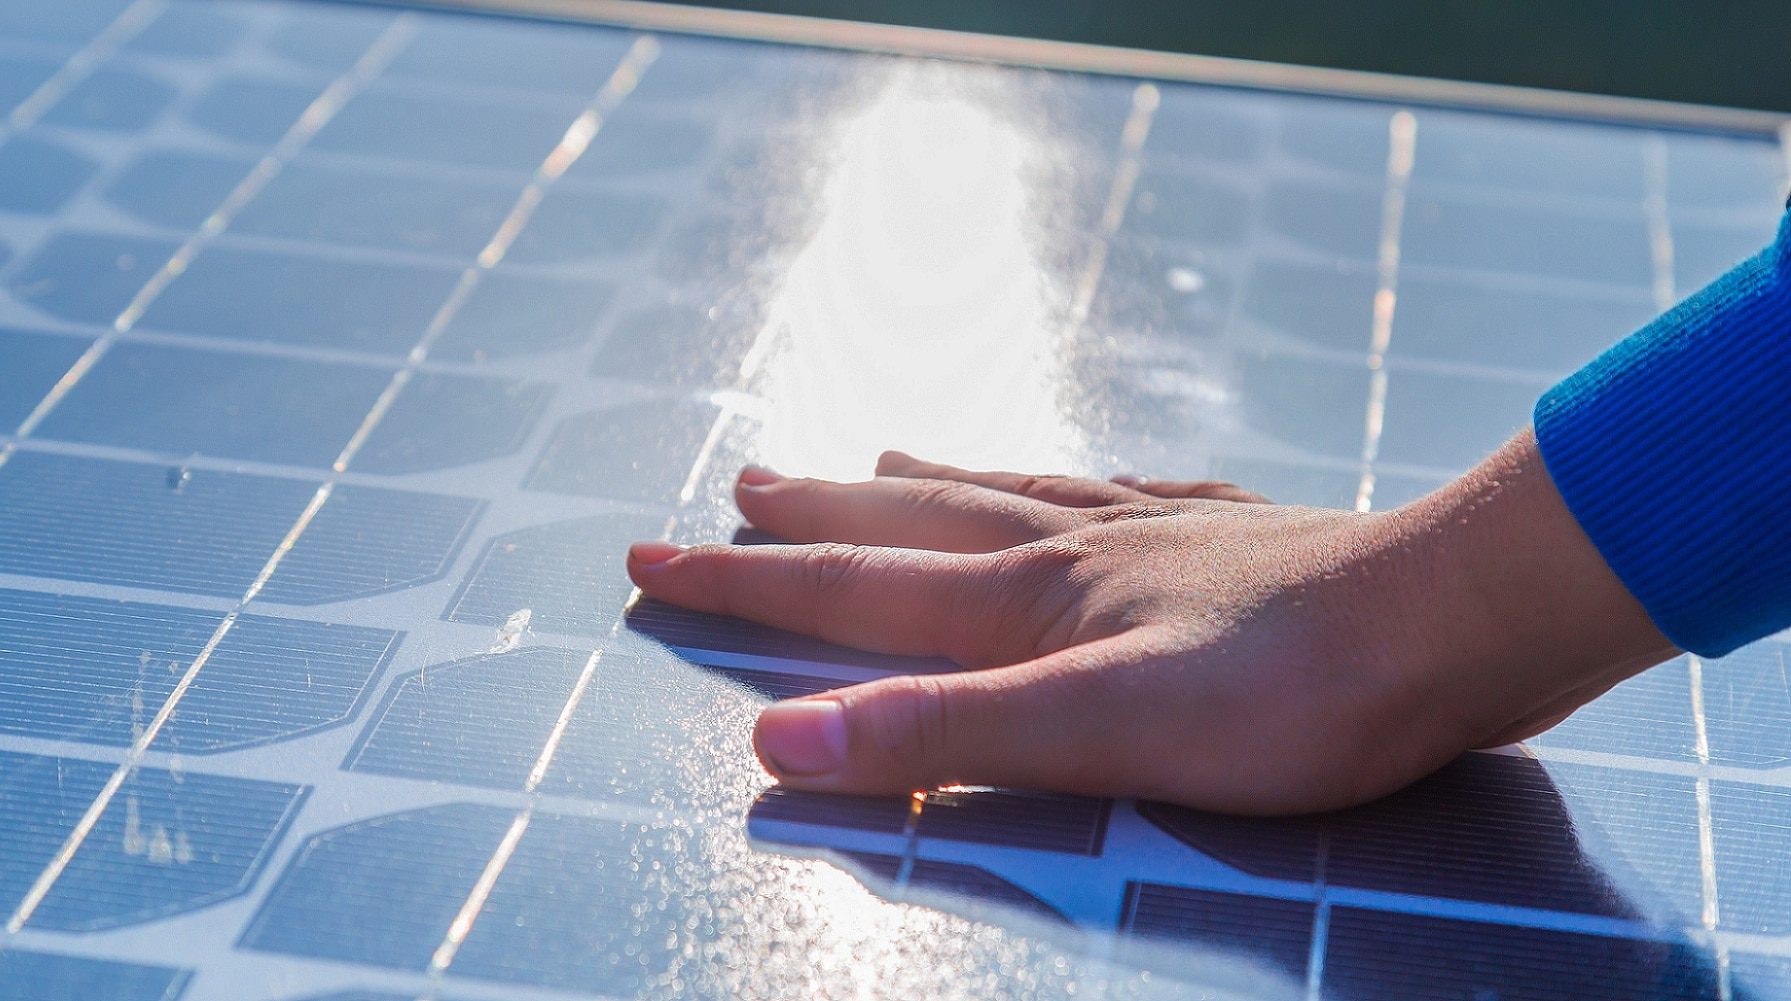 Human hand touching a solar panel